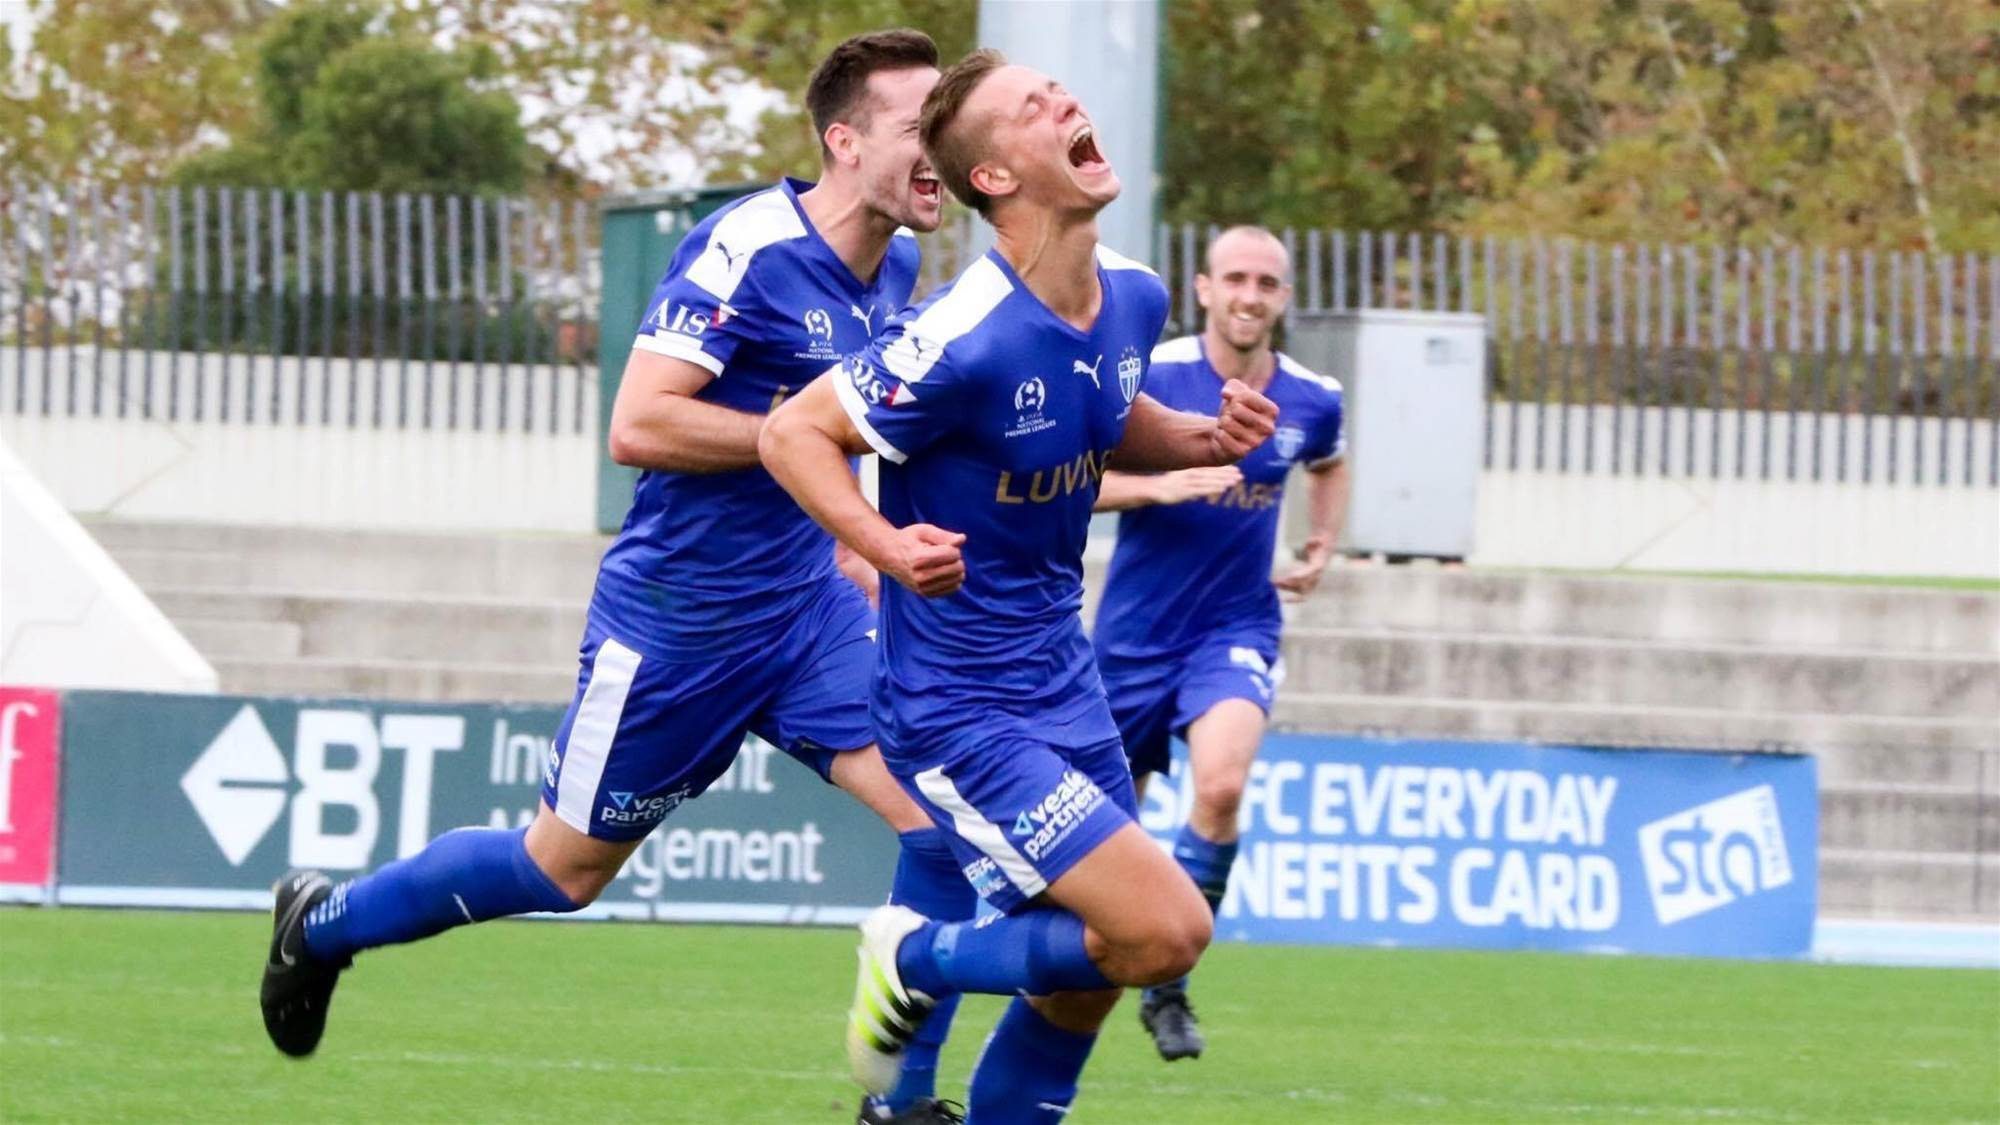 South star: FFA Cup semi our biggest game ever